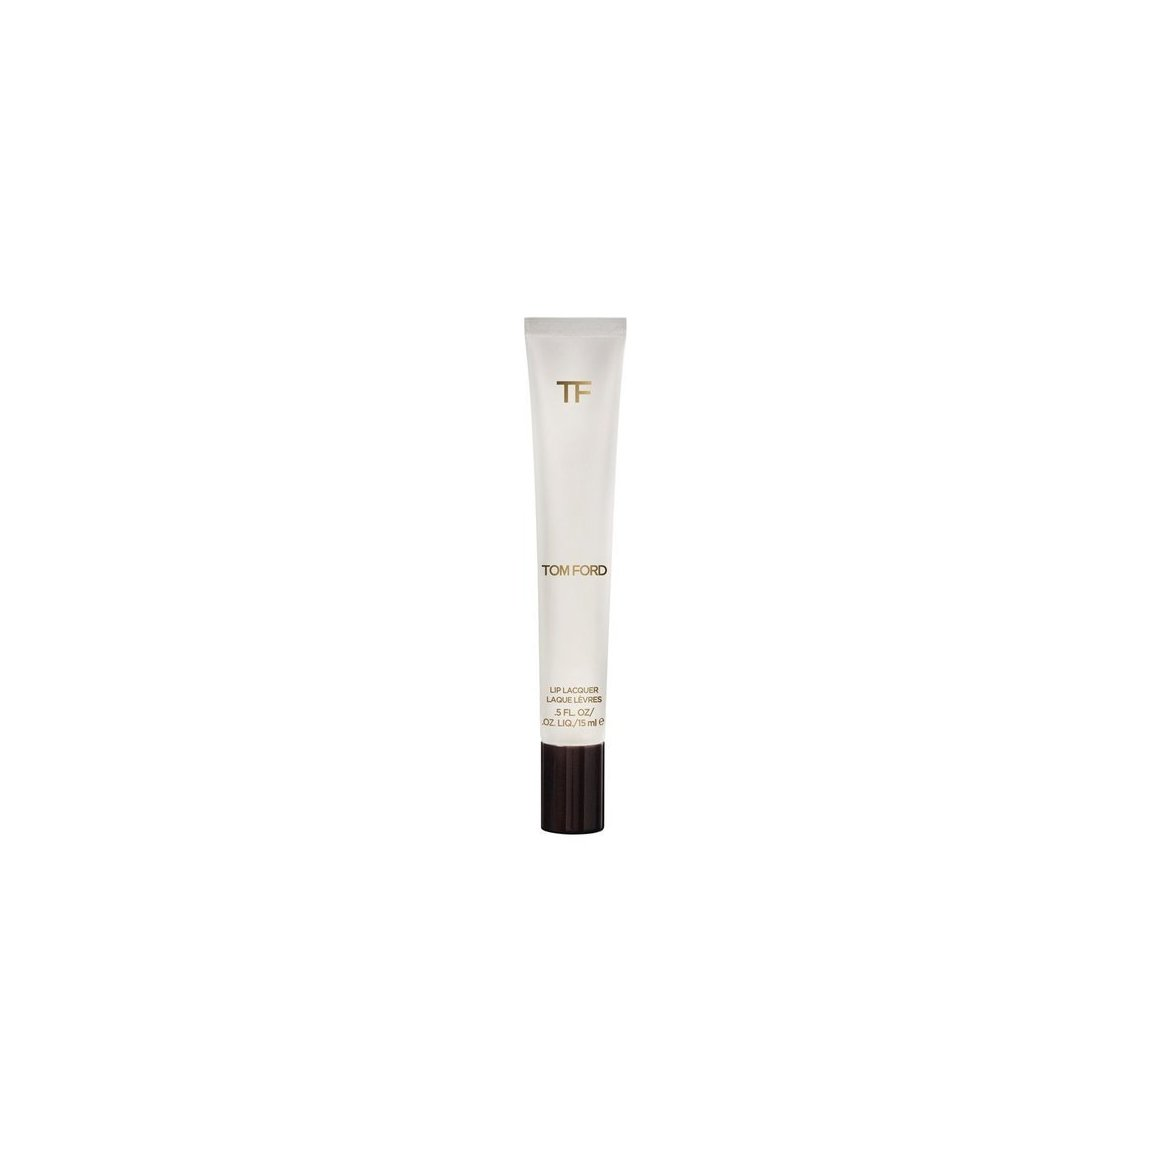 TOM FORD Lip Lacquer Vinyl product smear.